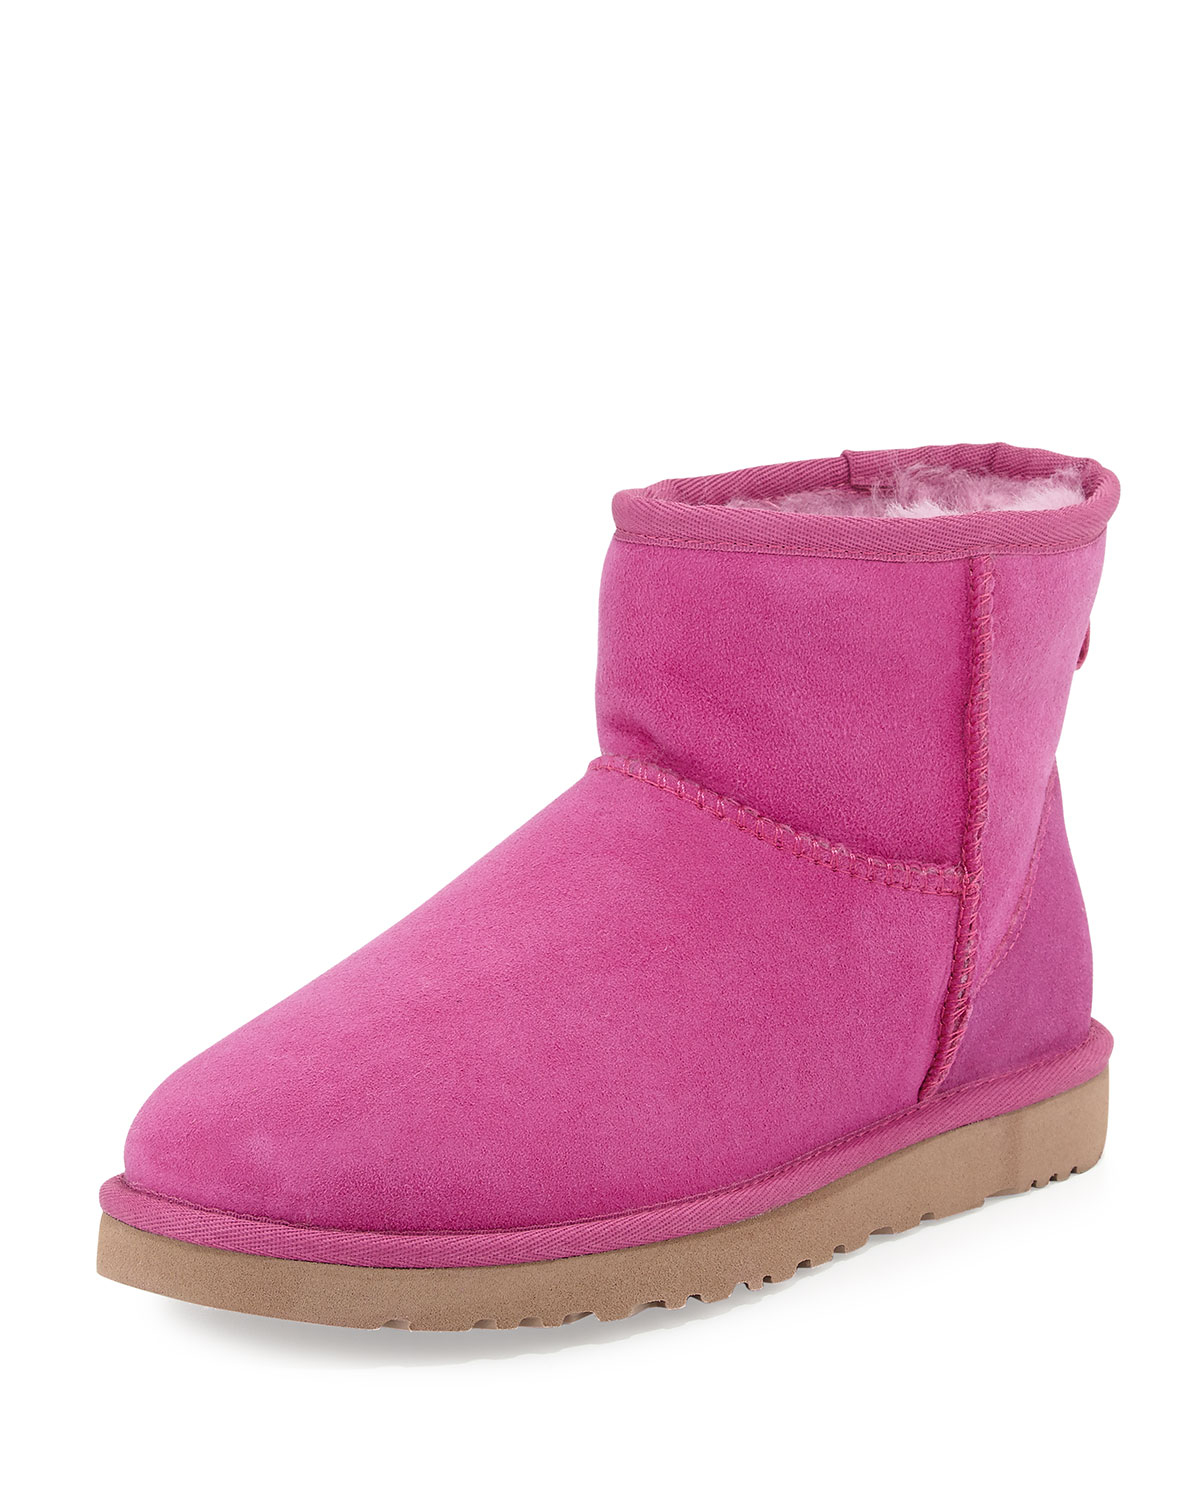 lyst ugg mini classic shearling boot in pink. Black Bedroom Furniture Sets. Home Design Ideas